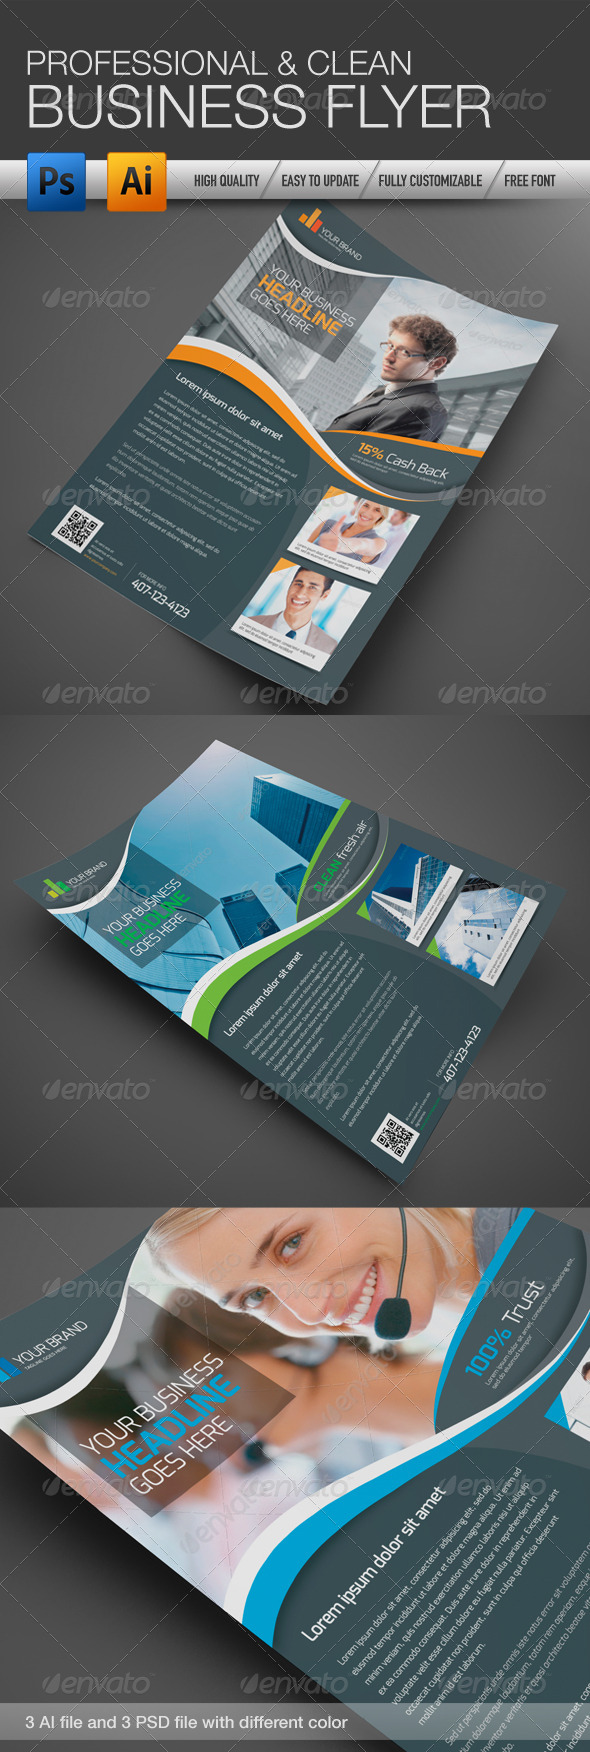 GraphicRiver Professional and Clean Business Flyer 4291713